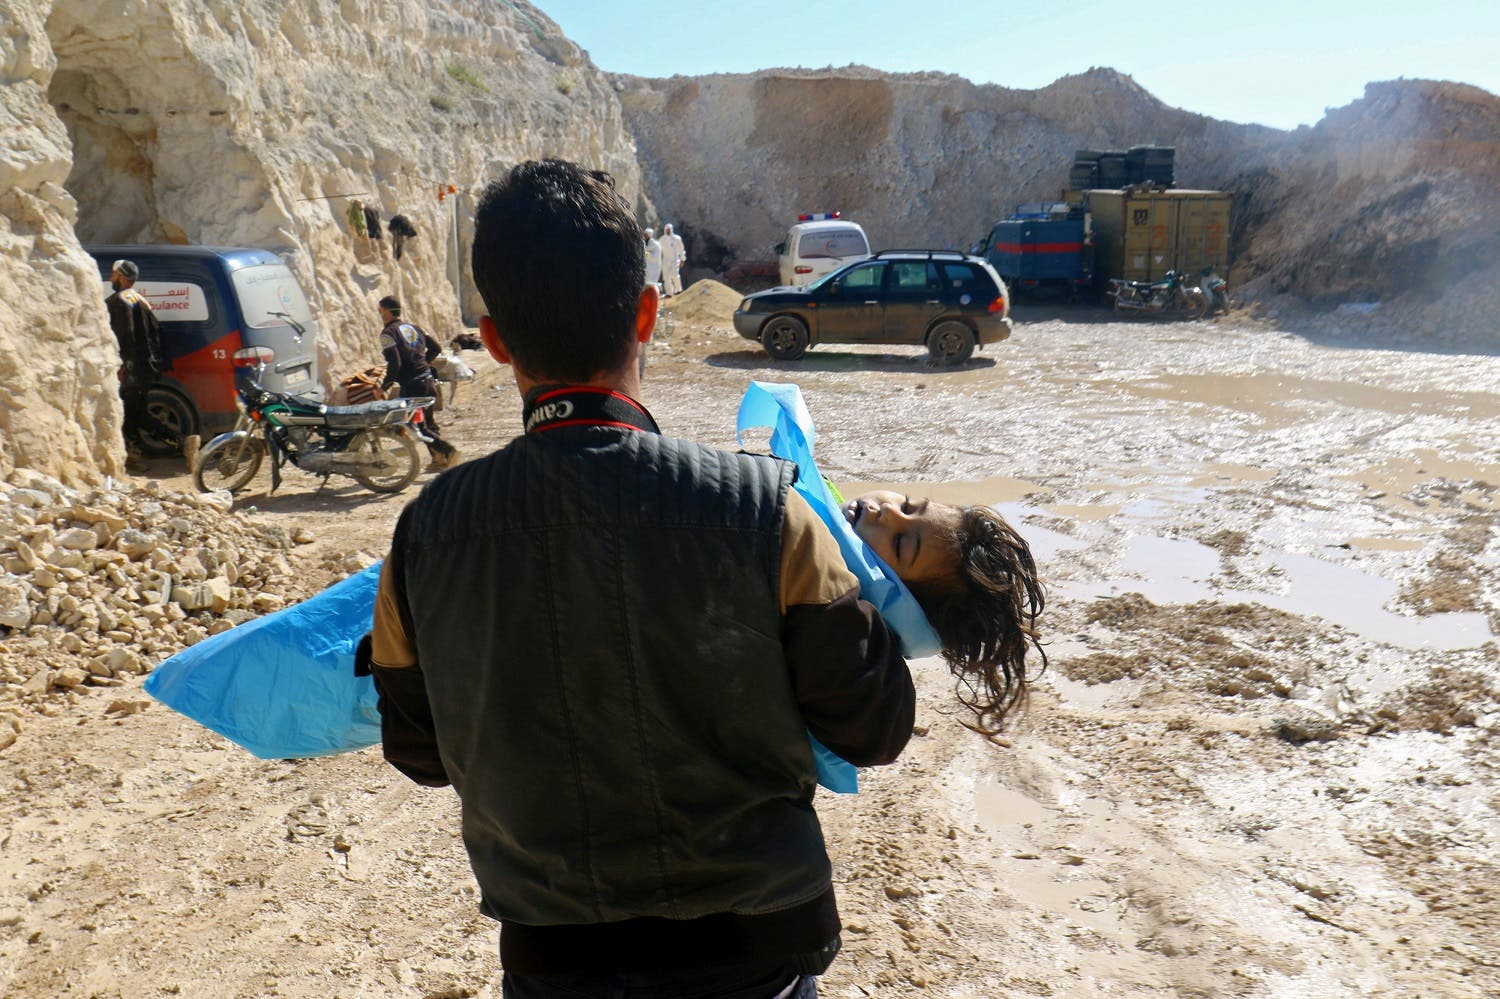 A man carries the body of a dead child, after what rescue workers described as a gas attack in Khan Sheikhoun in Idlib, Syria April 4, 2017. (Reuters)